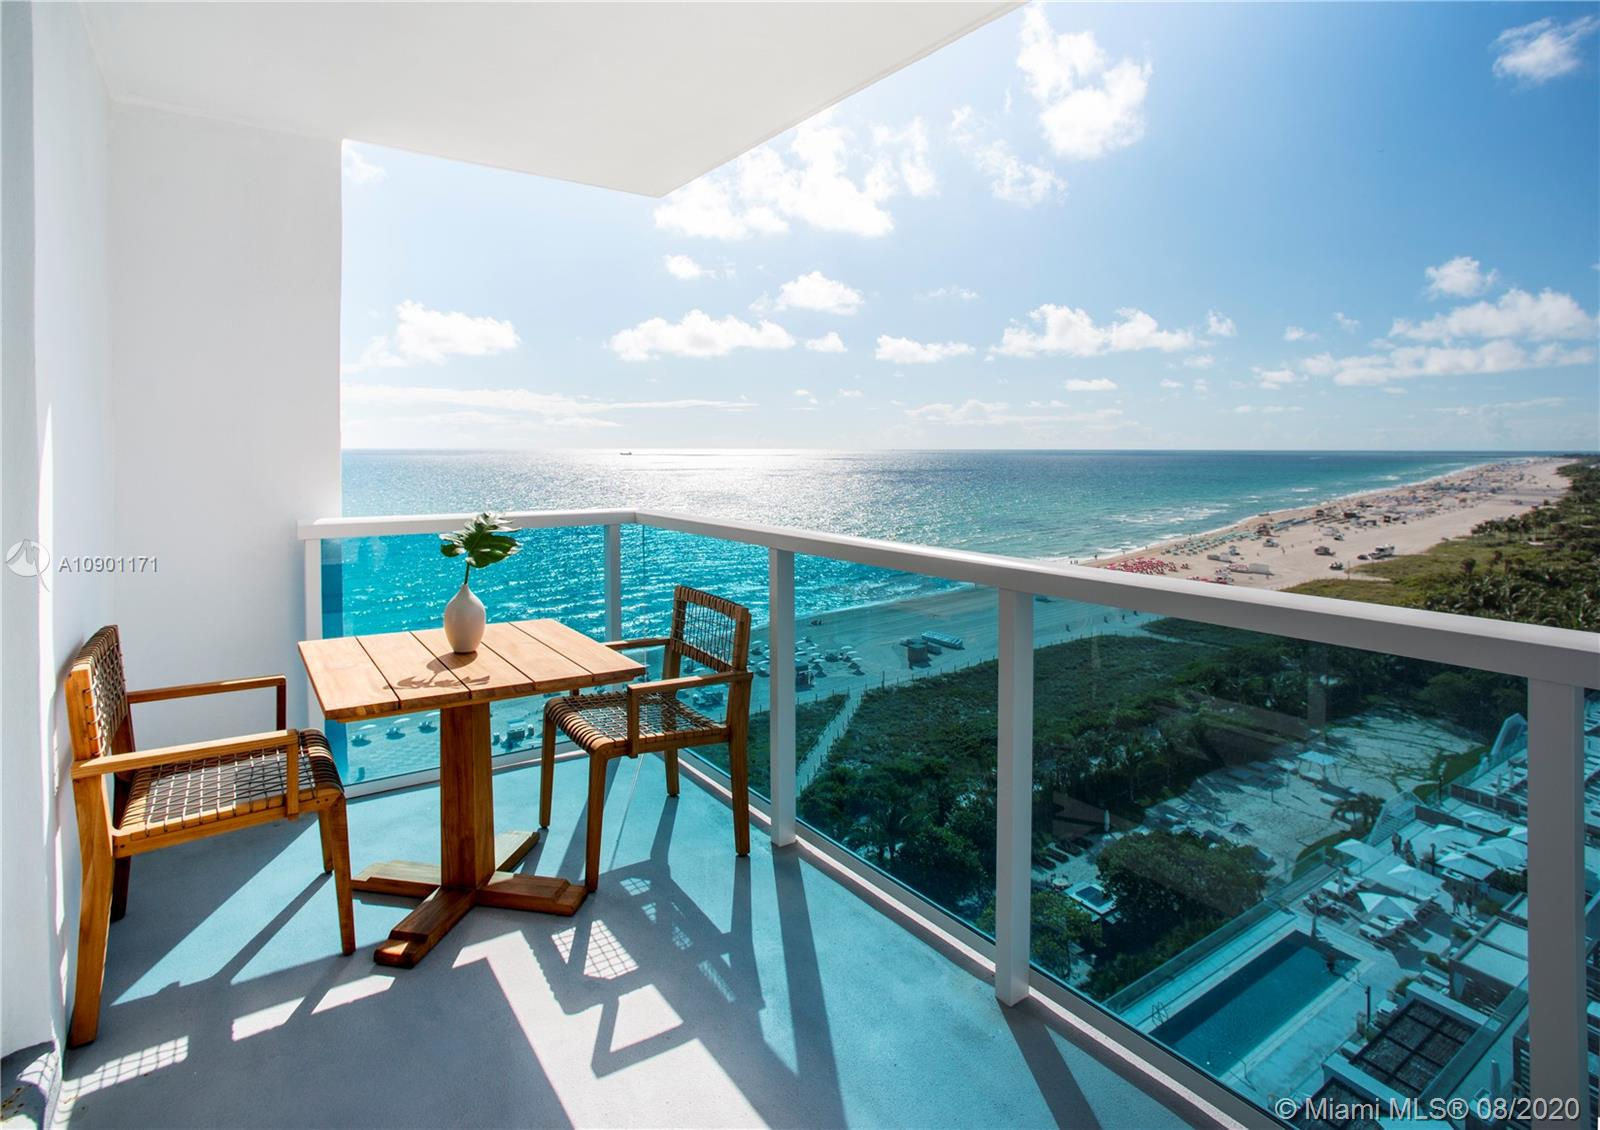 """Eco-luxury, spa-living, expansive views, comfort and convenience in a turnkey corner residence at 1 Hotel & Homes in Miami Beach. This rarely available 2-bedroom in the most desirable """"20-line"""" is unlike anything else on the market. Tastefully appointed by acclaimed architect Debora Aguiar with washed woods, natural fibers and indirect lighting to provide a soothing, harmonious atmosphere. Both bedrooms enjoy panoramic ocean views with floor-to-ceiling glass. Endless beach vista from the SE facing terrace. Unit is equipped for the Hotel Program. Residents can access all services & amenities including pools, rooftop lounge, restaurants, beach service, private beach club & wellness program. The 1 Hotel & Homes is a revitalizing oasis! Unit is rented through May 1, 2021."""